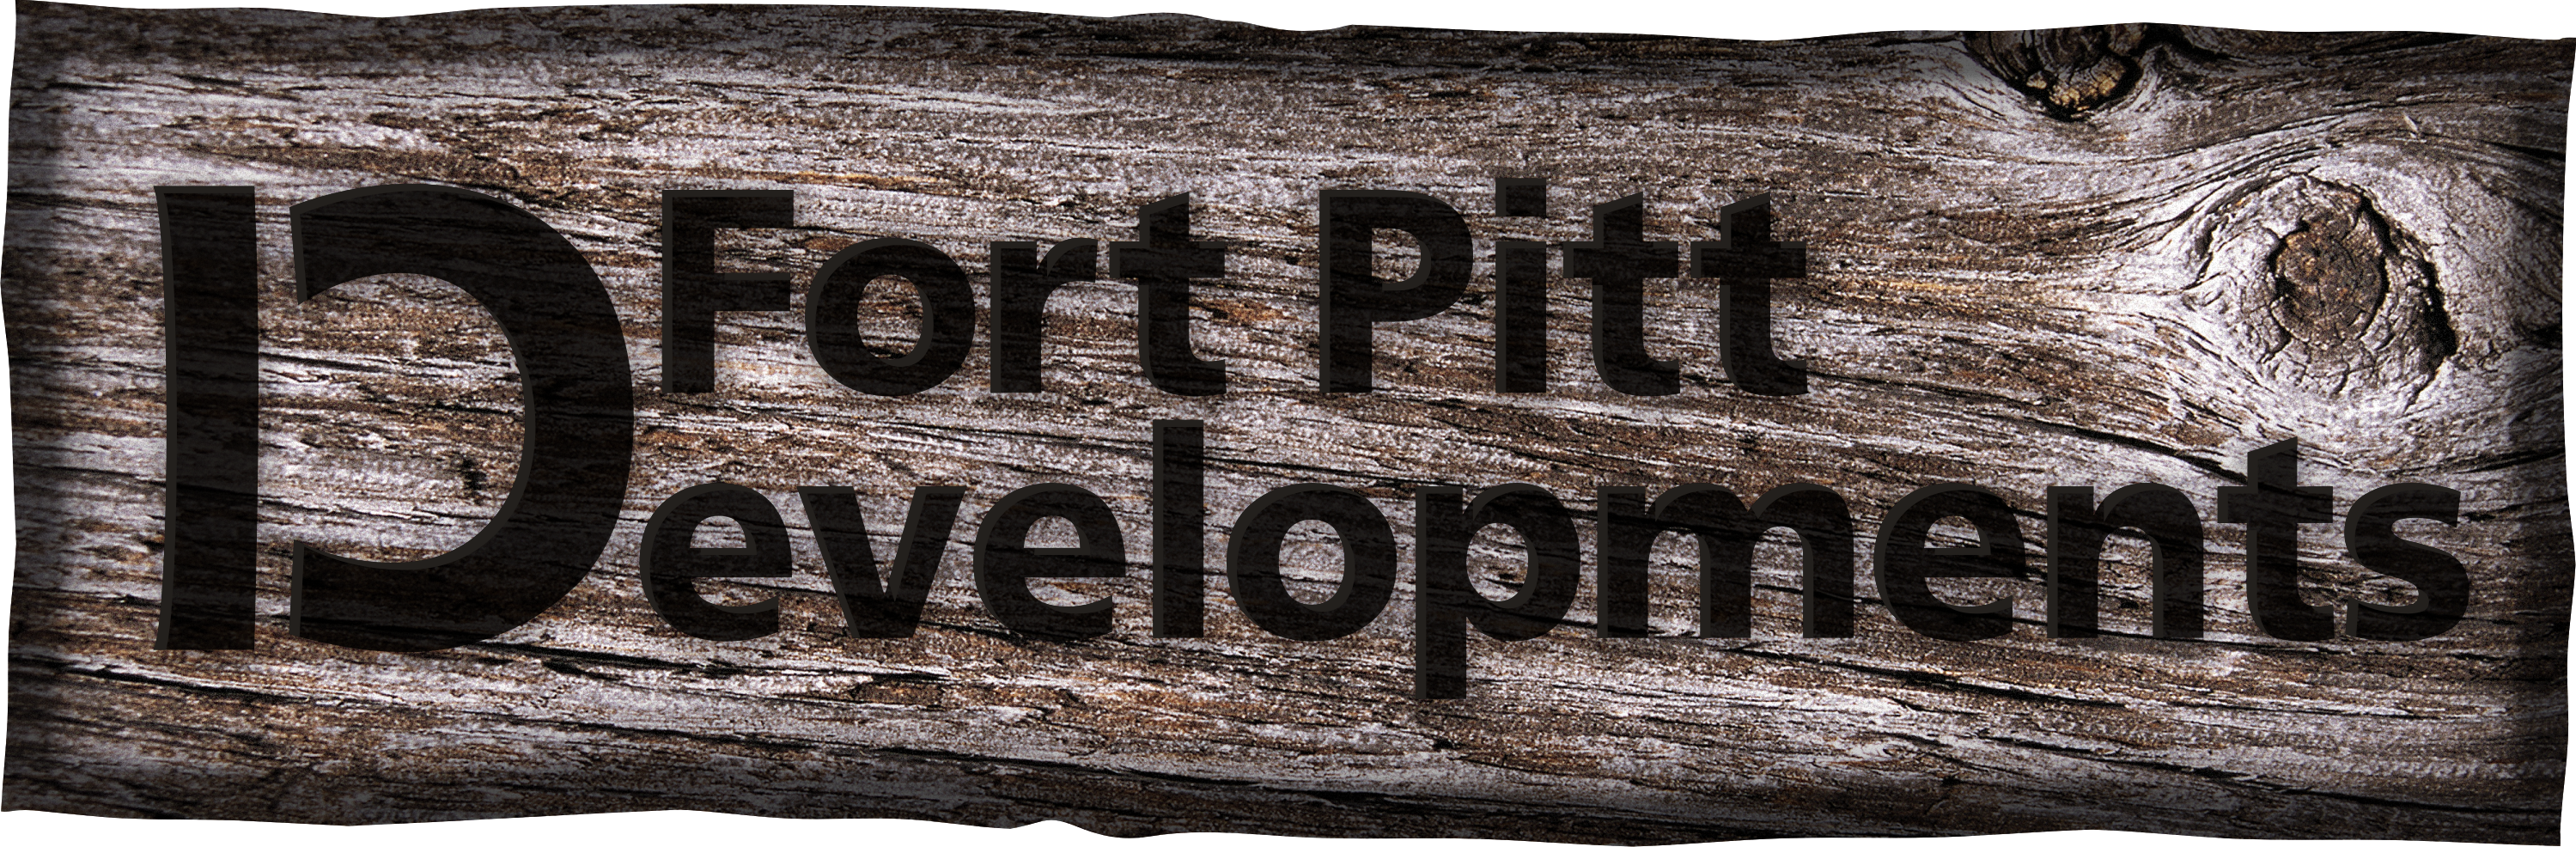 Fort Pitt Developments